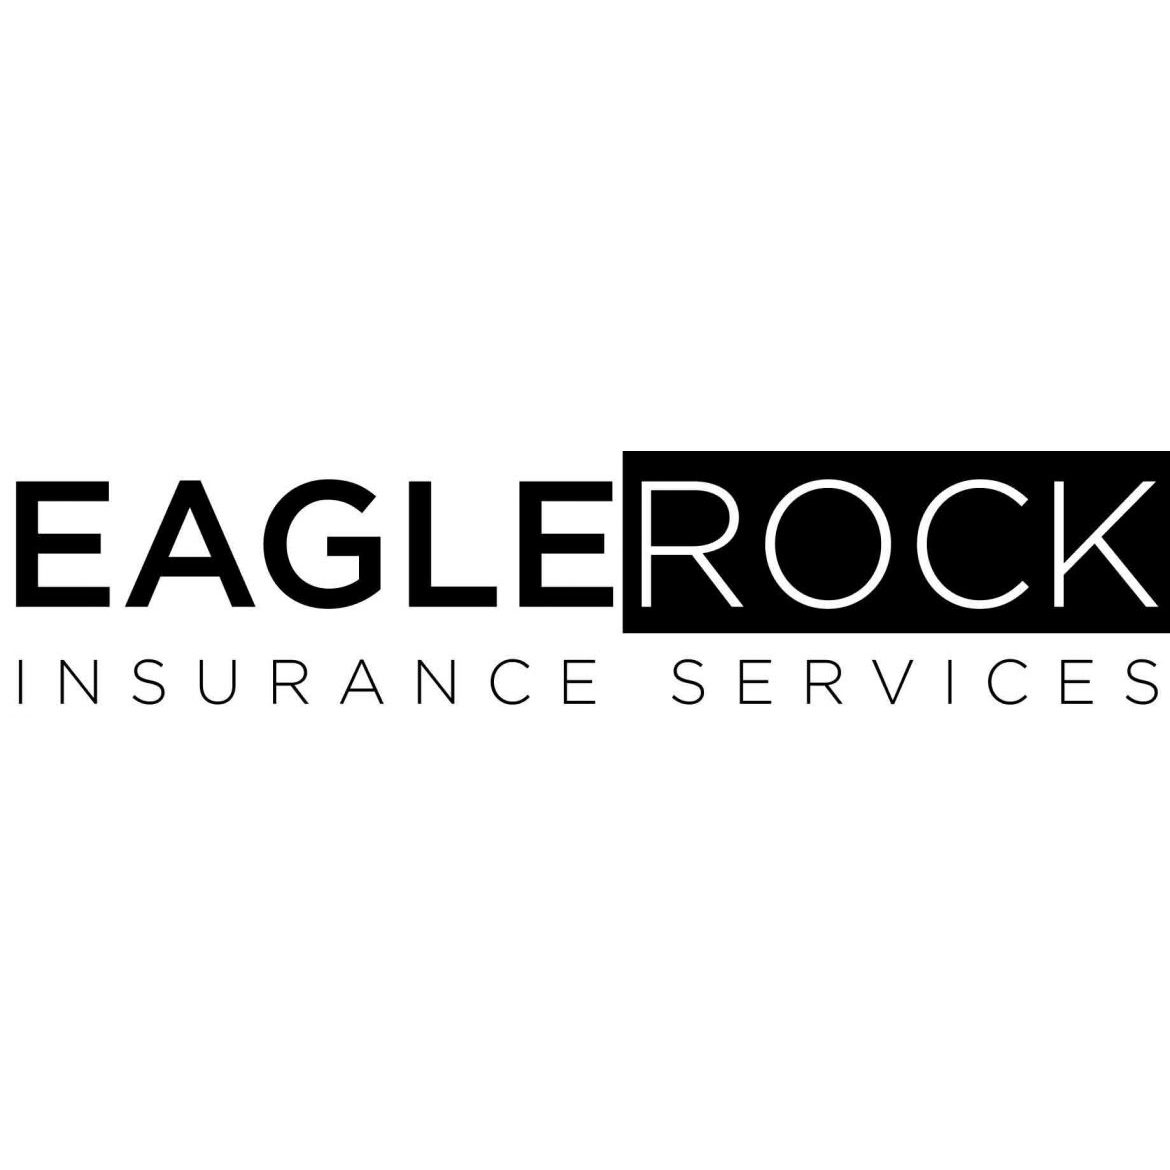 Eagle Rock Insurance Services